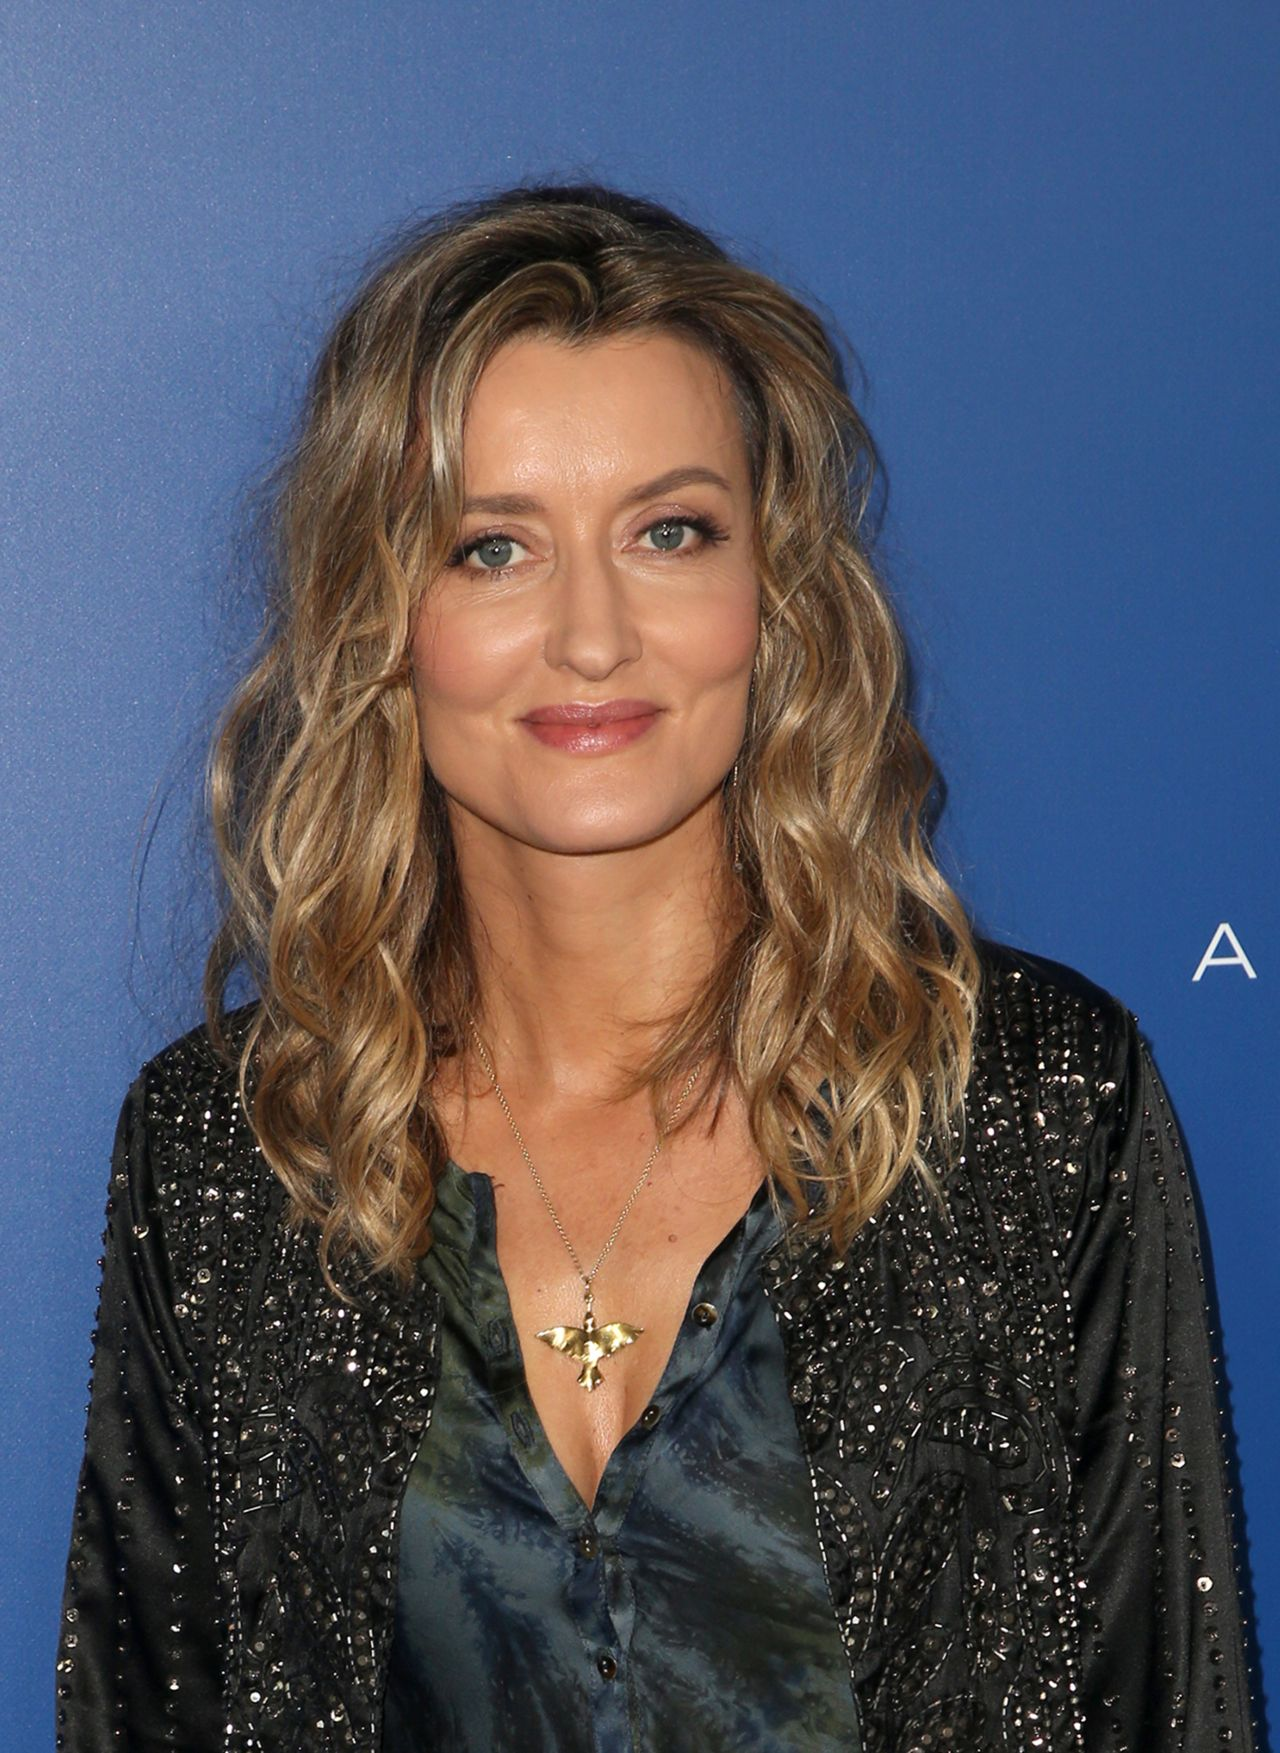 Natascha McElhone - The First Premiere in Los Angeles